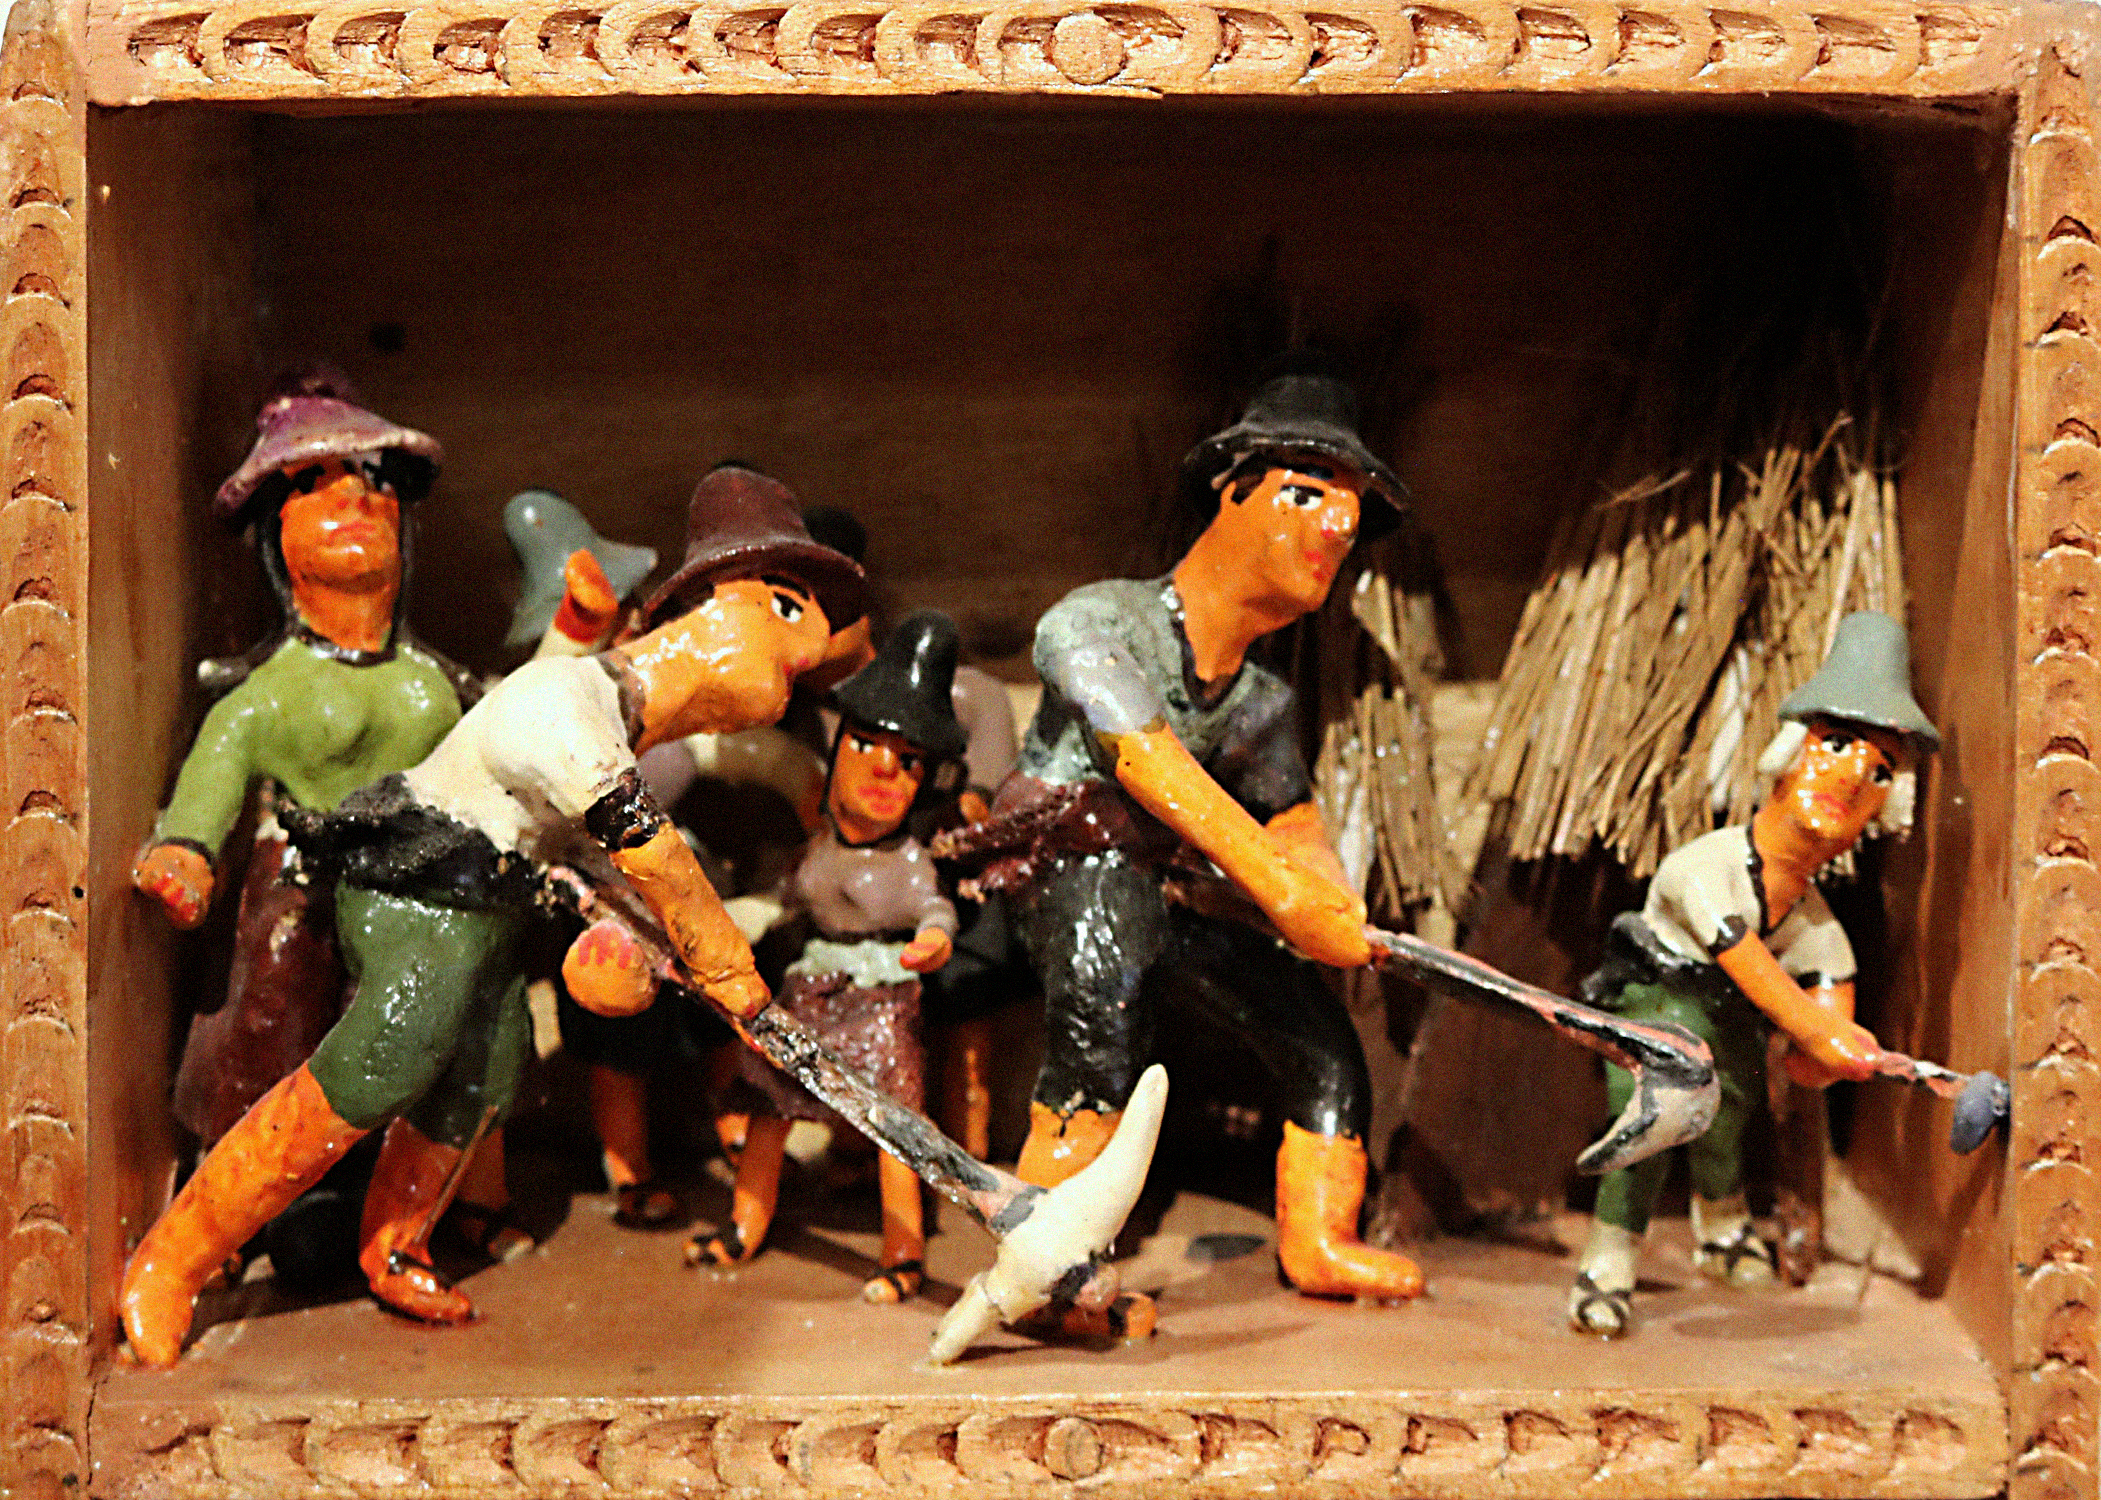 A scene called Sowing within a retablo. The scene portrays humanlike figurines wearing hats and holding farming tools, as though they are working in a field. In the backgroup are what appear to be structures with straw roofs.